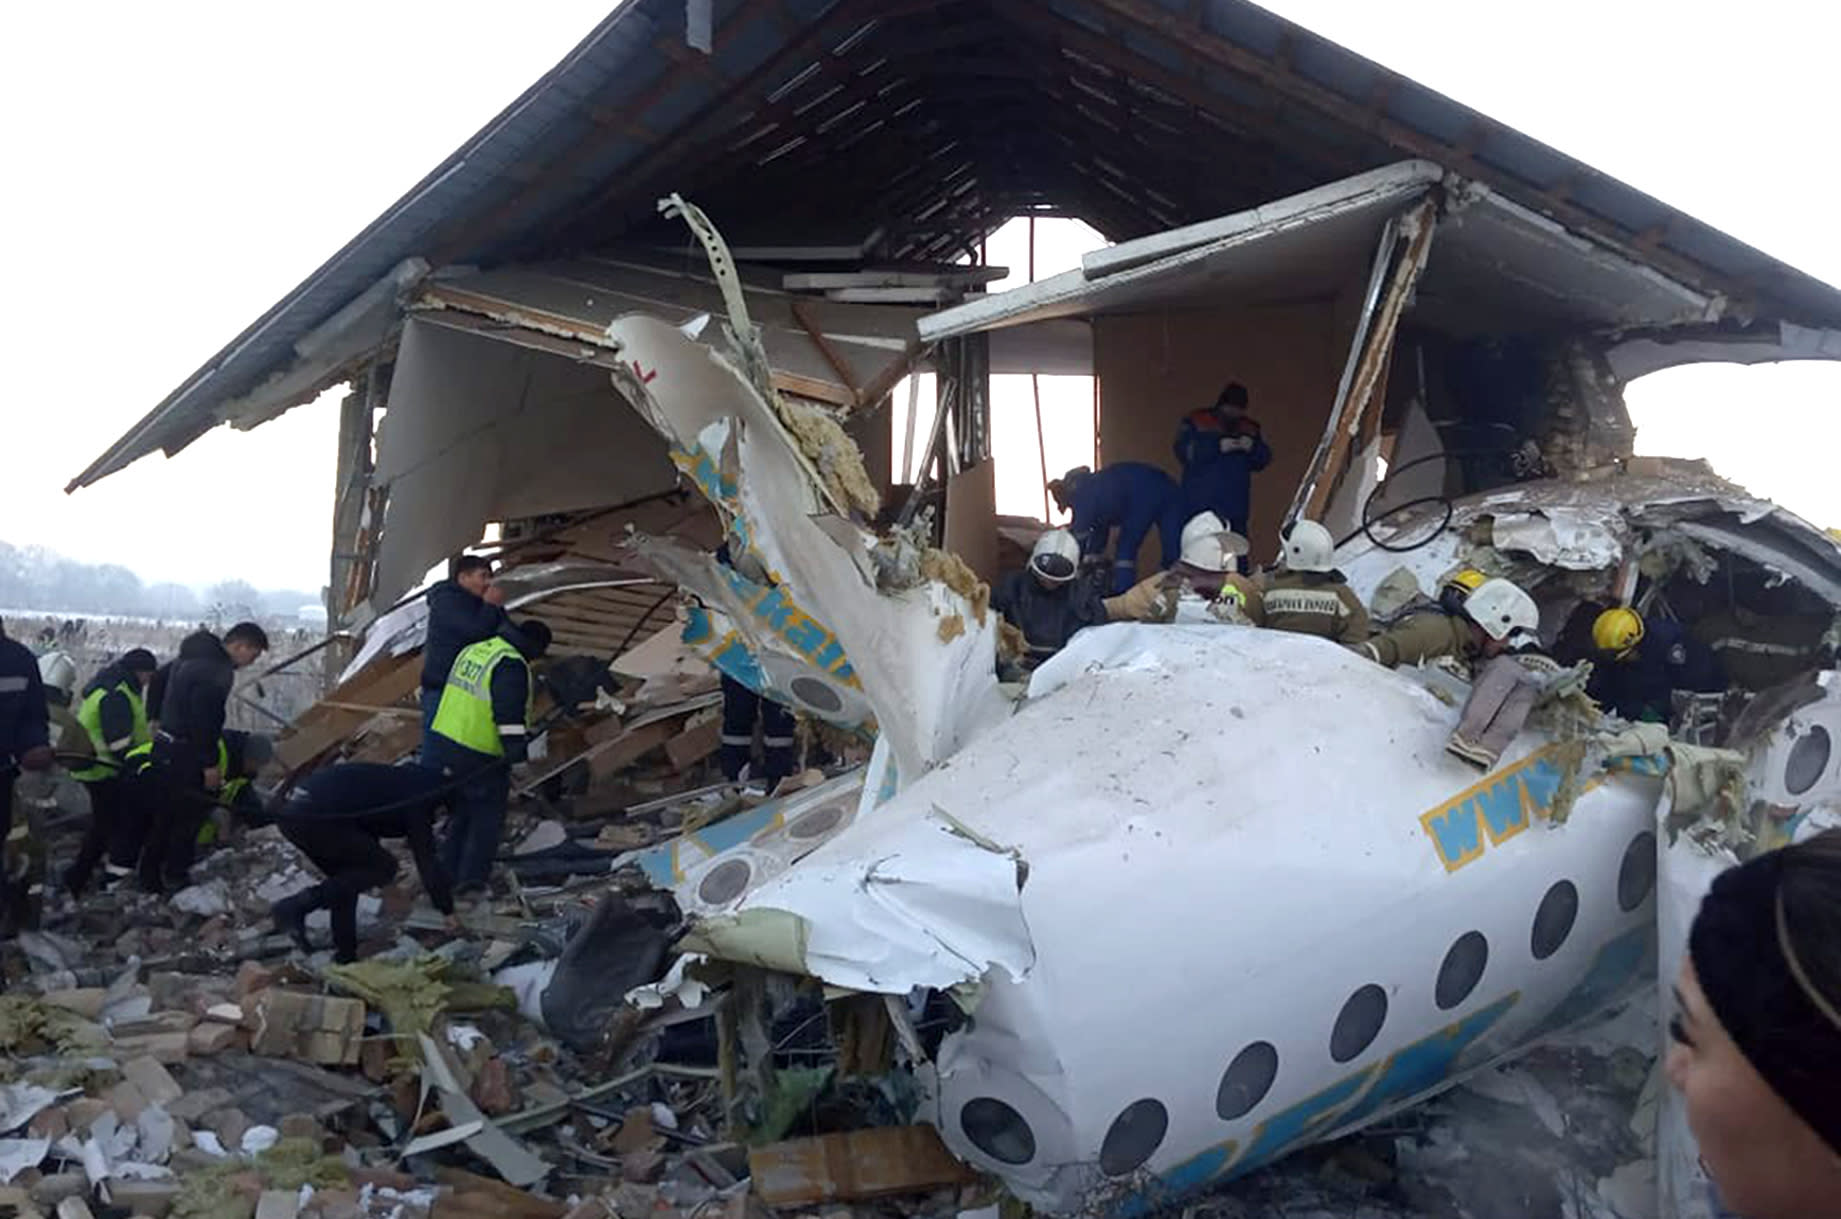 In this handout photo provided by the Emergency Situations Ministry of the Republic of Kazakhstan, police and rescuers work on the side of a plane crash near Almaty International Airport, outside Almaty, Kazakhstan, Friday, Dec. 27, 2019. Almaty International Airport said a Bek Air plane crashed Friday in Kazakhstan shortly after takeoff causing numerous deaths. The aircraft had 100 passengers and crew onboard when hit a concrete fence and a two-story building shortly after takeoff. ( Emergency Situations Ministry of the Republic of Kazakhstan photo via AP)